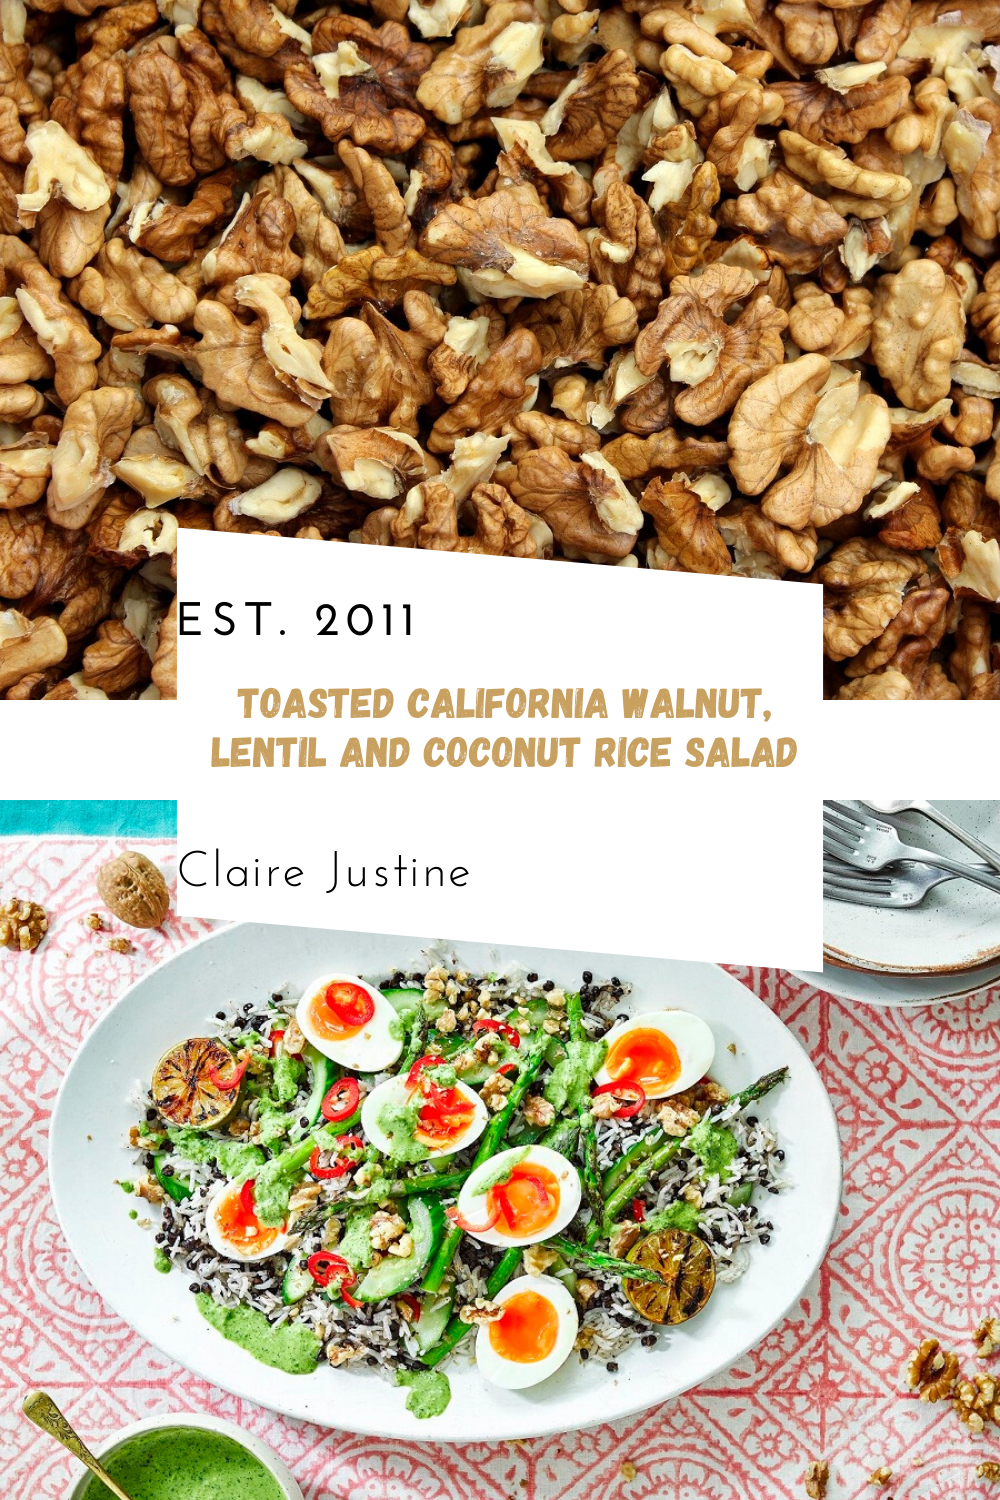 Toasted California Walnut, Lentil And Coconut Rice